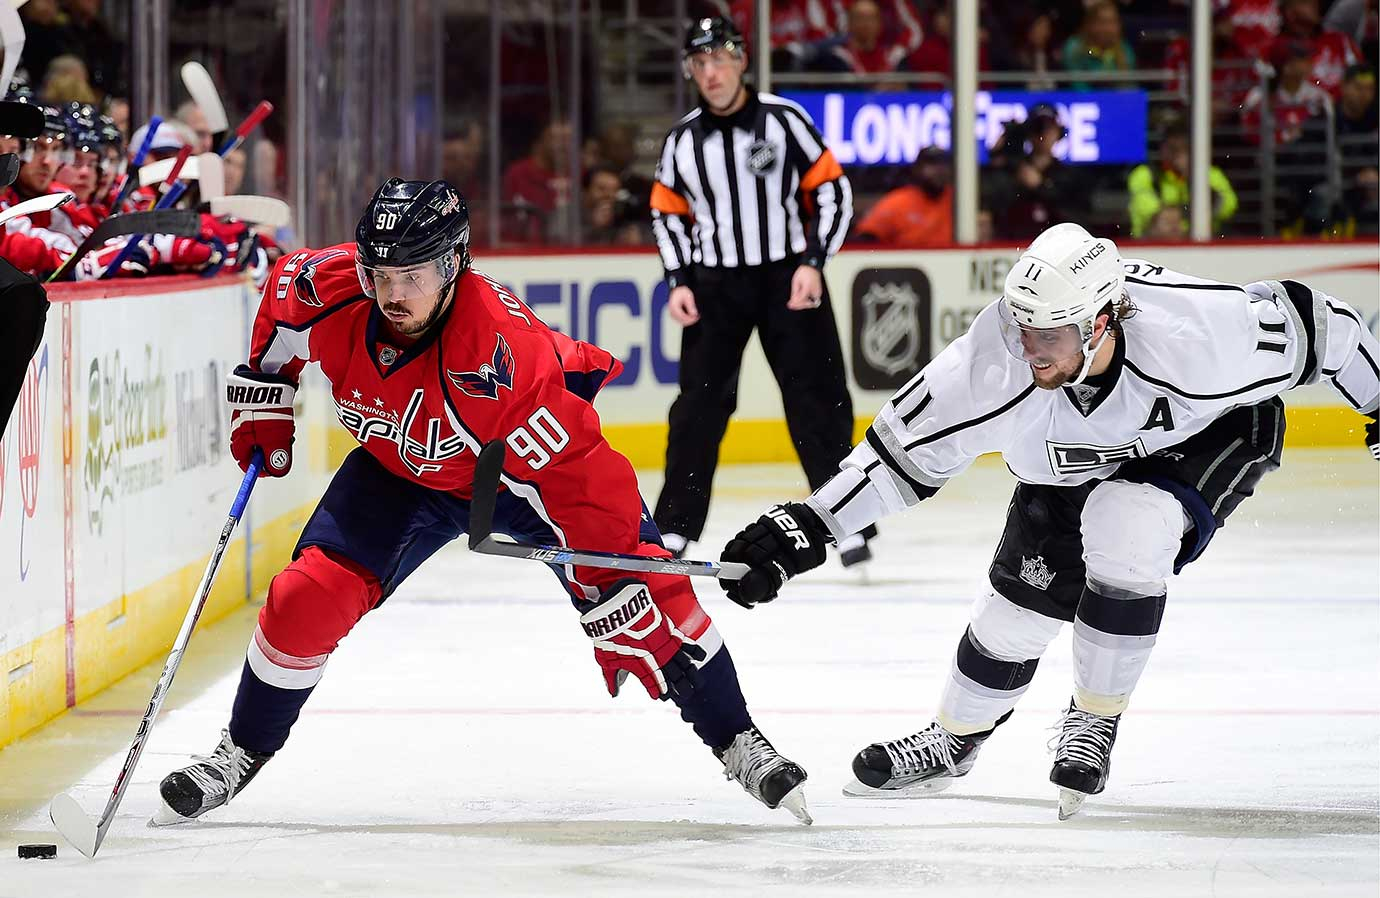 Marcus Johansson of the Washington Capitals skates with the puck against Anze Kopitar of the L.A. in a possible Stanley Cup preview.